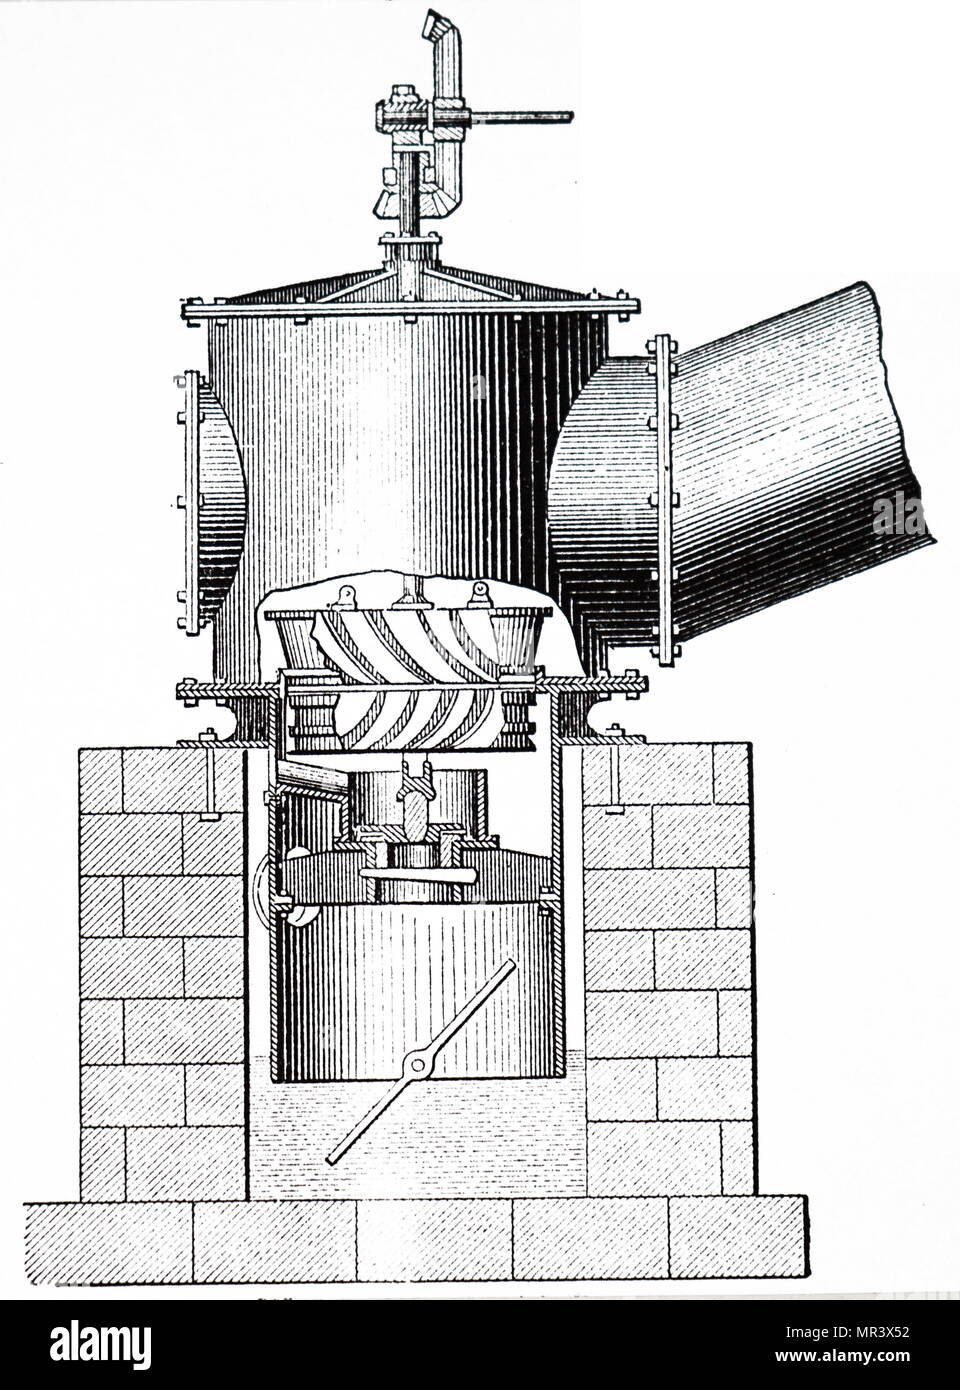 Engraving depicting a Watson's turbine on the Jonval (downward flow) principle. Dated 19th century - Stock Image